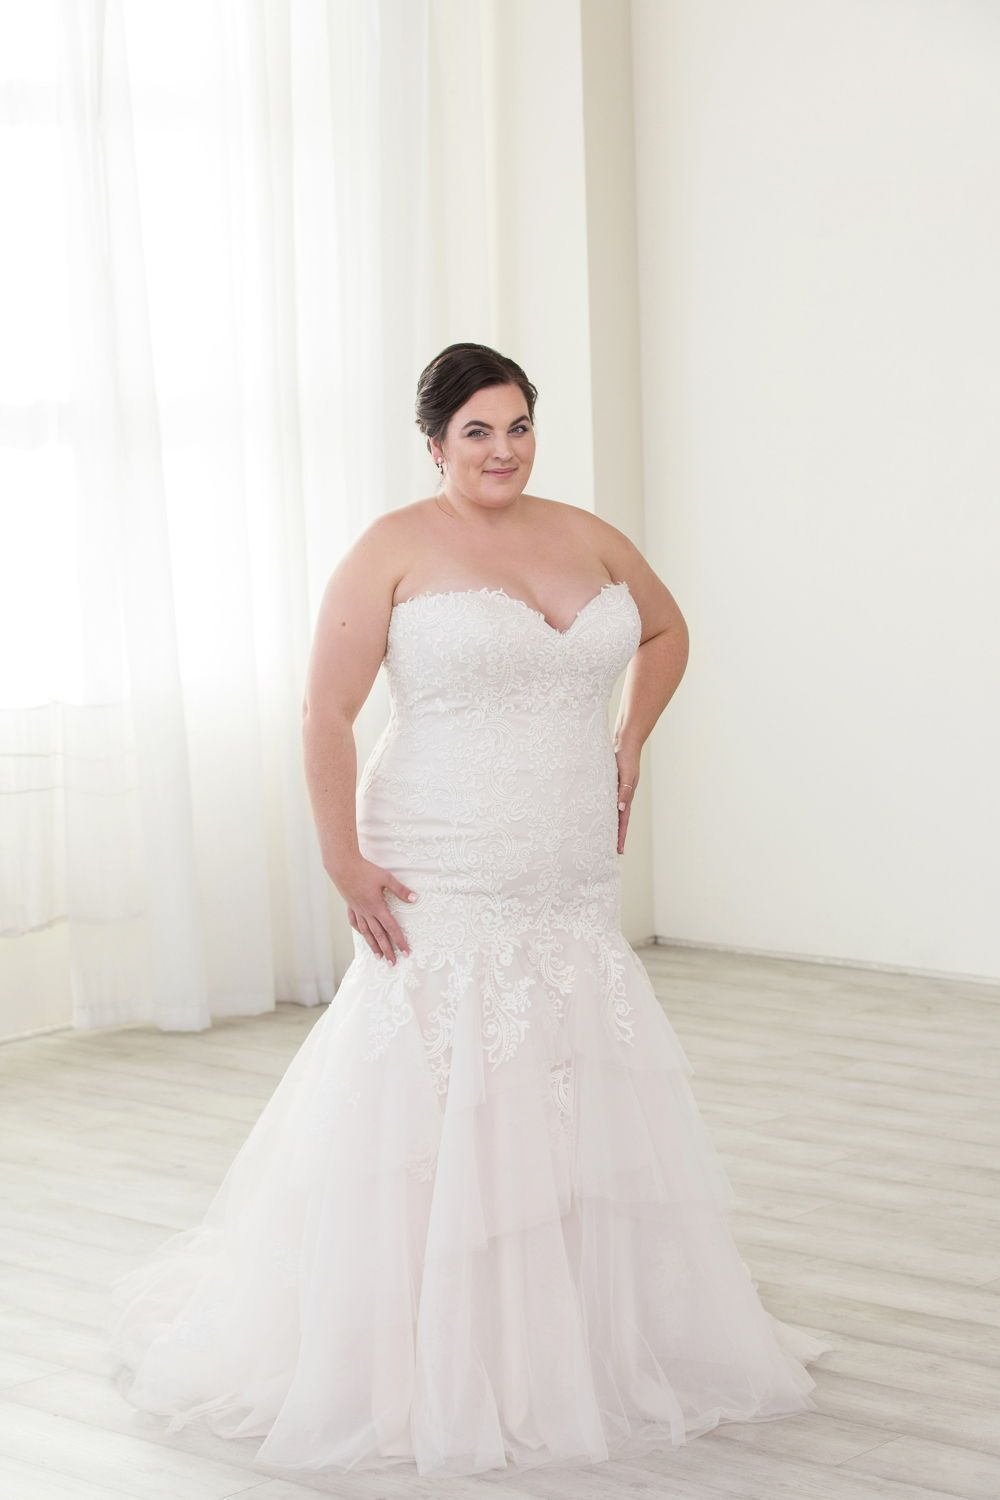 c663f8e2952f1 Strapless mermaid plus size wedding dress. Plus size bridal in Portland,  OR. Lace fit and flare wedding dress.